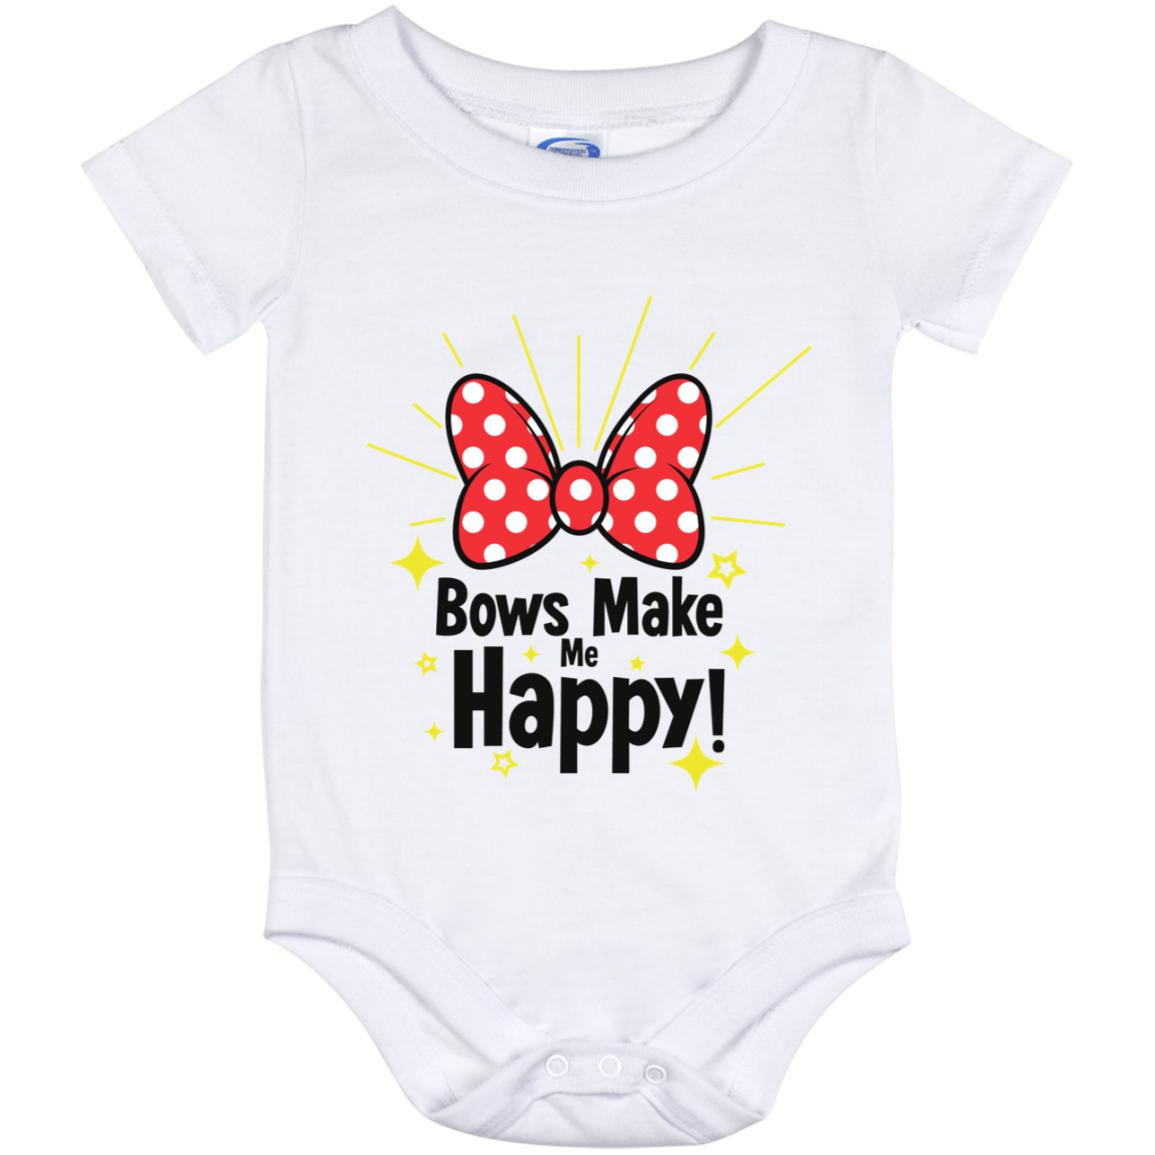 Bows Make Me Happy - Baby Onesie 12 Month